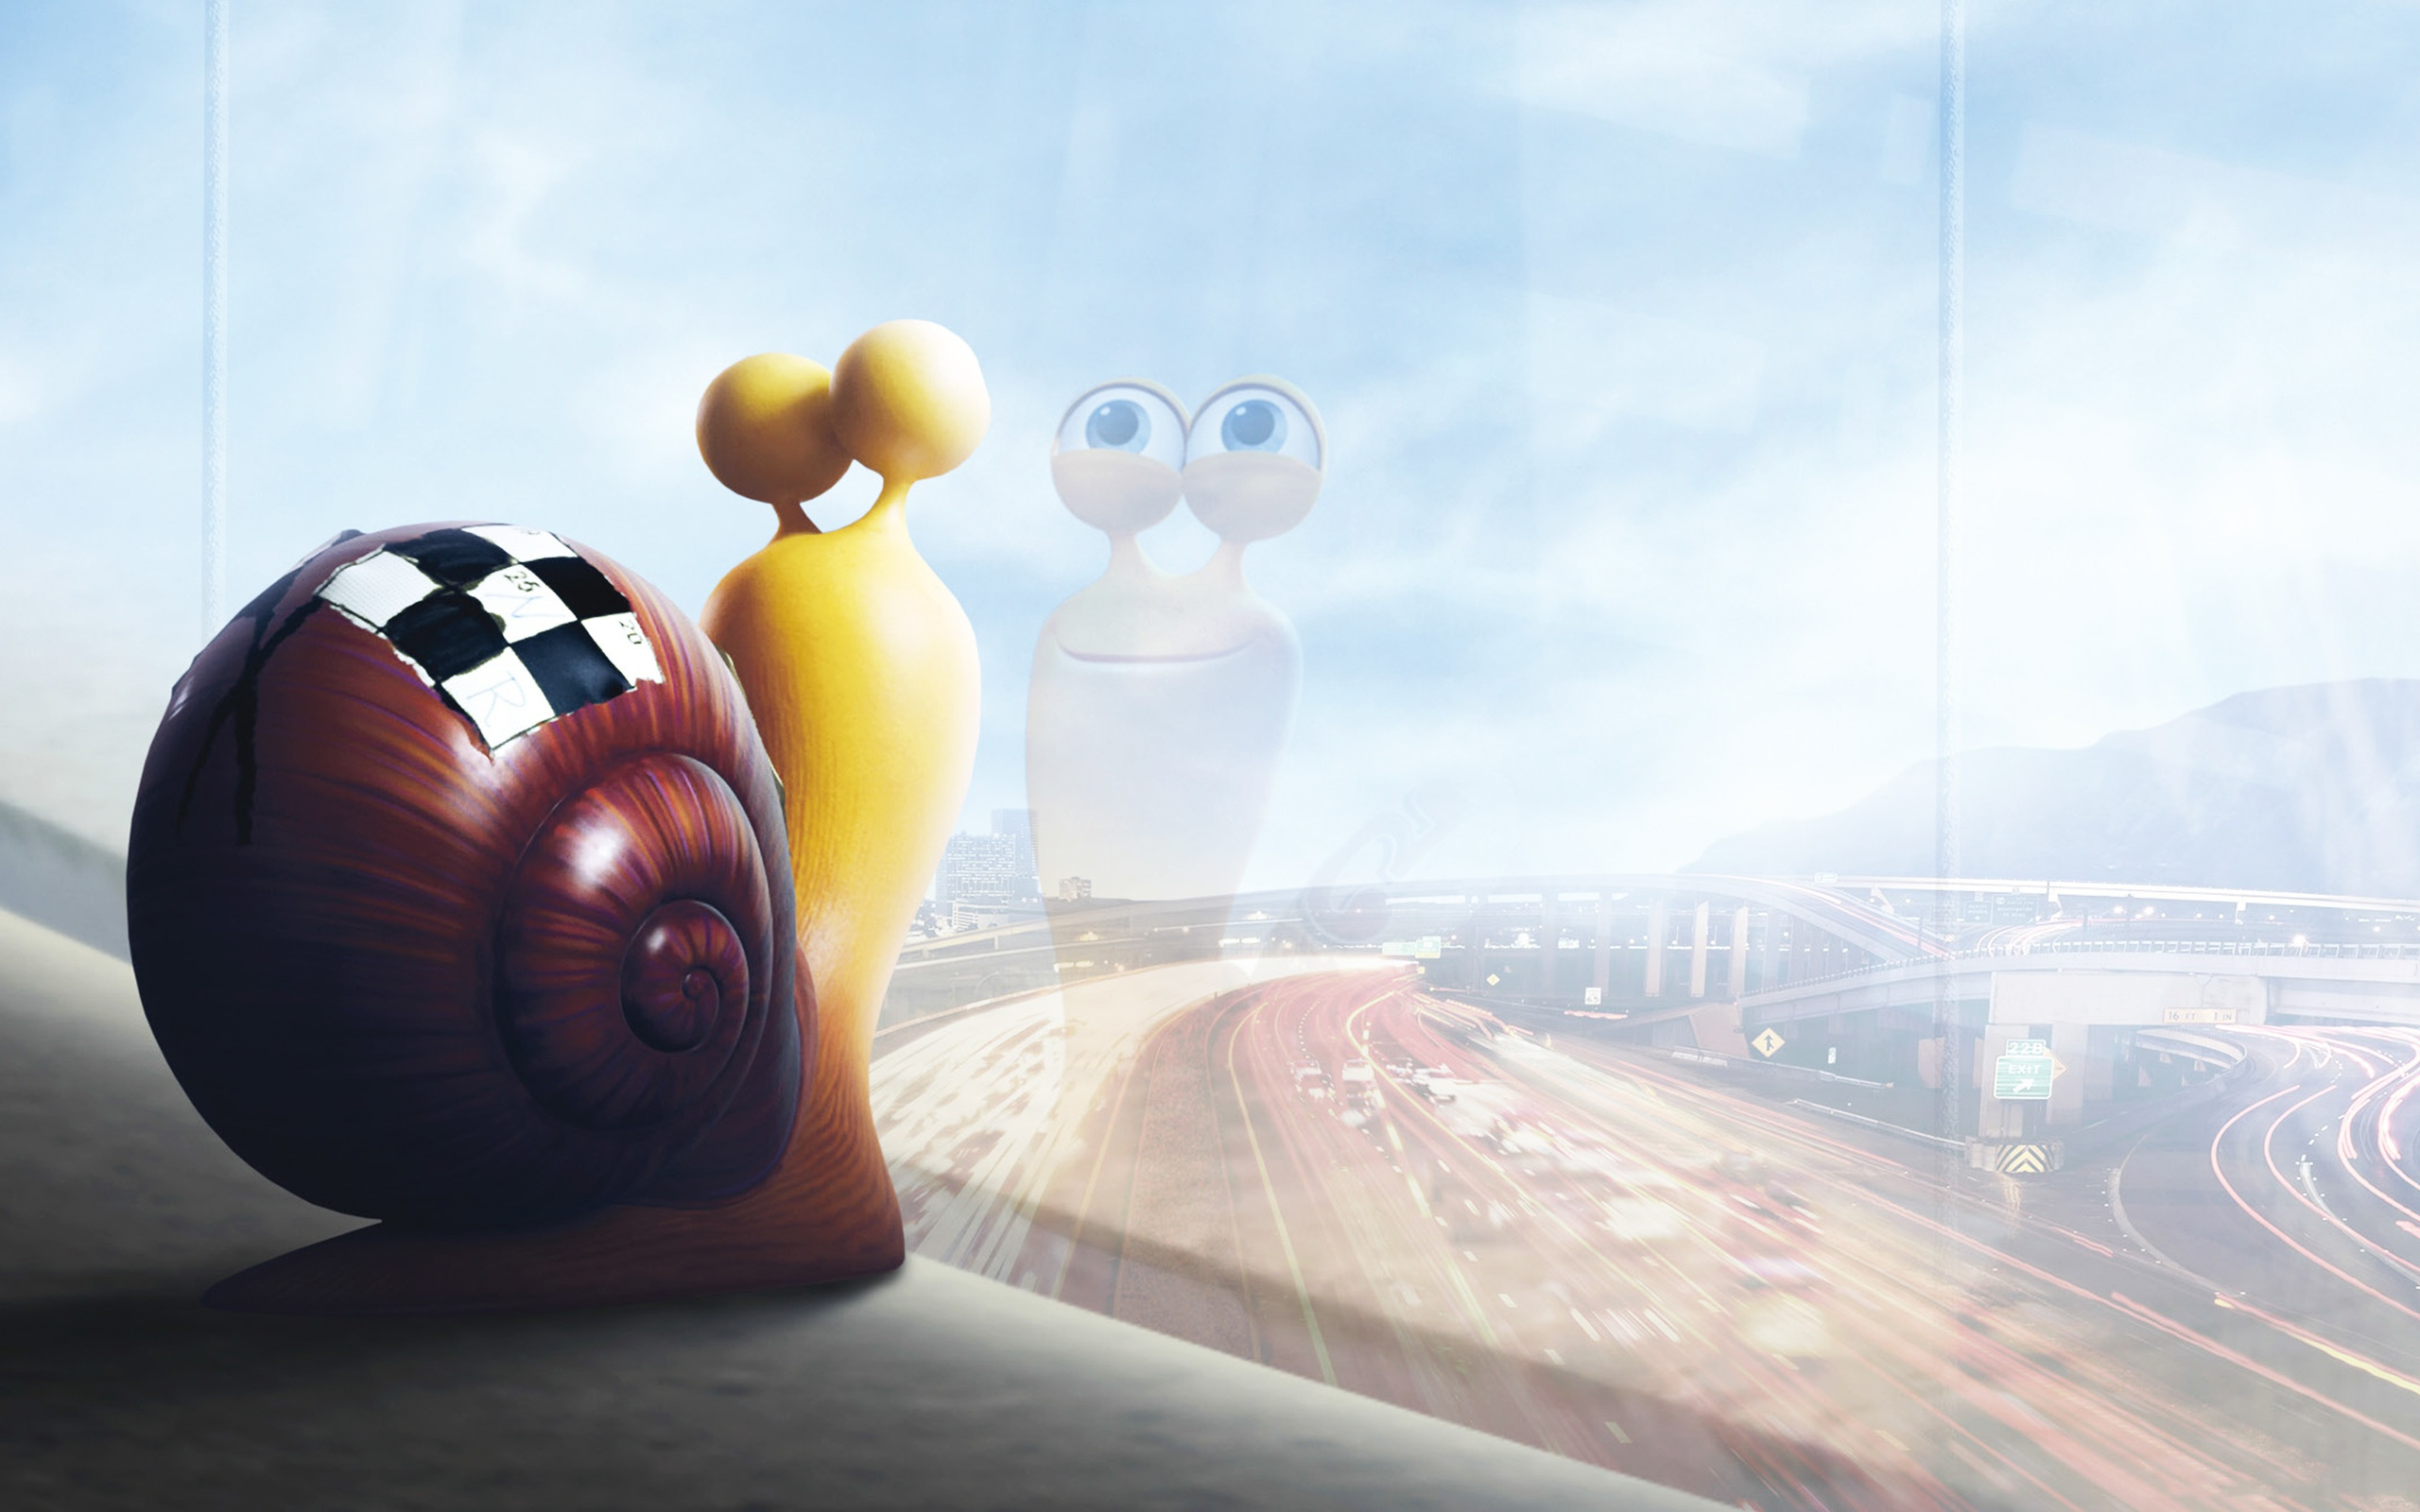 turbo movie wallpaper hd 36769 2560x1600 px ~ hdwallsource